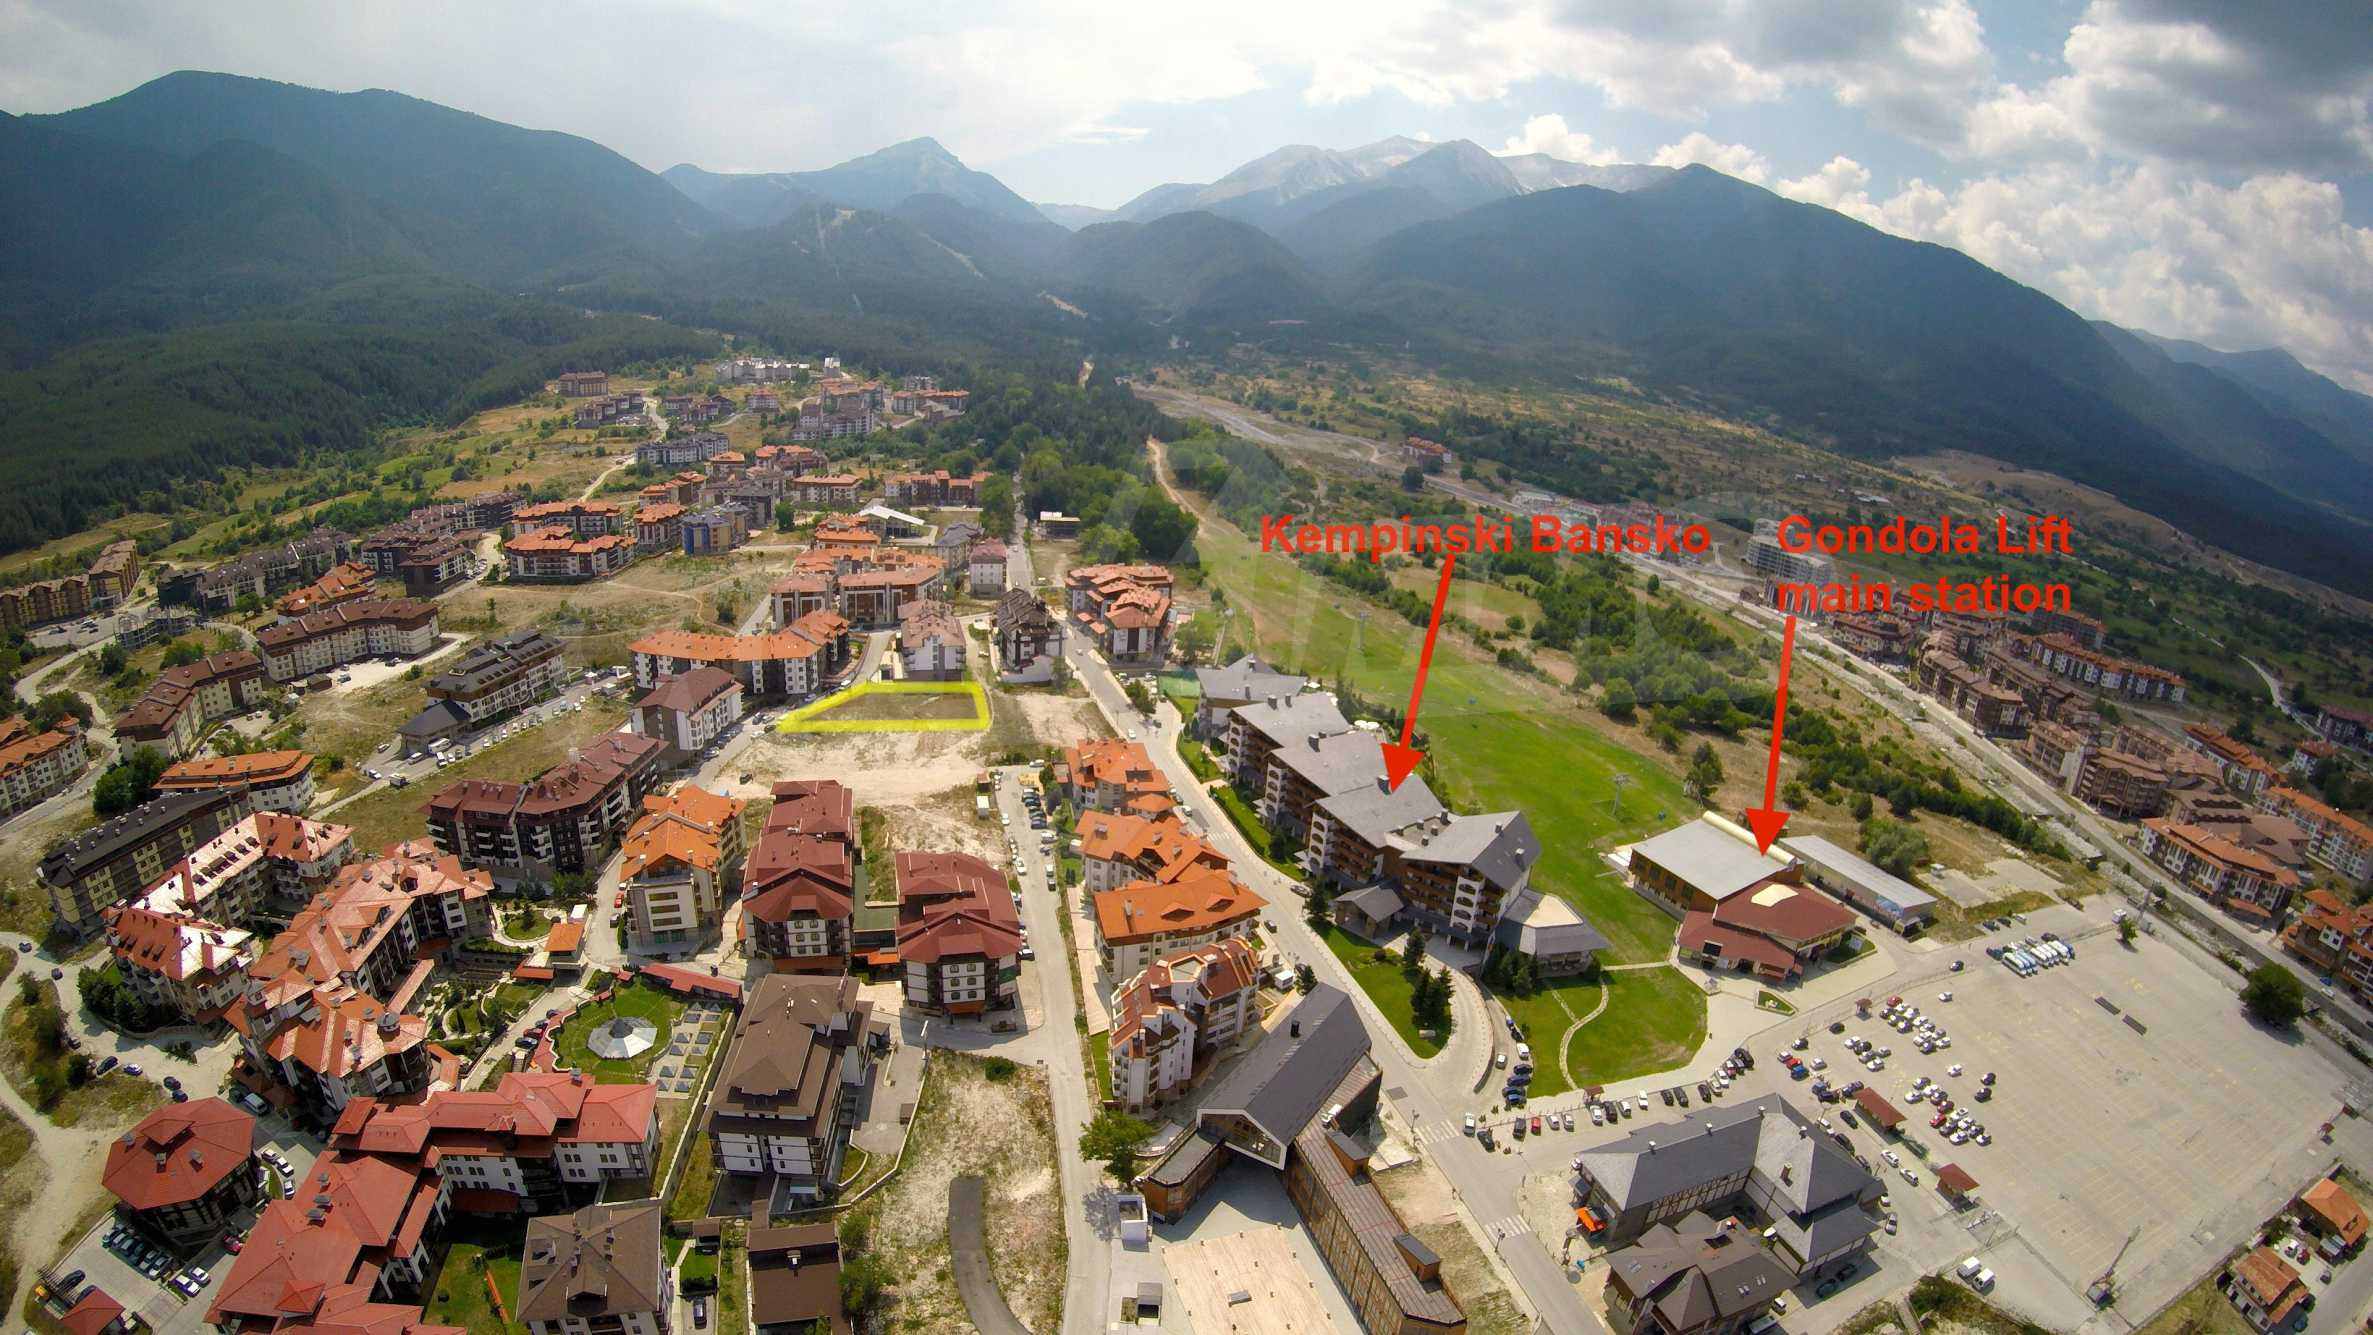 Chateau Blanc: Probably the best investment opportunity in Bansko... 28